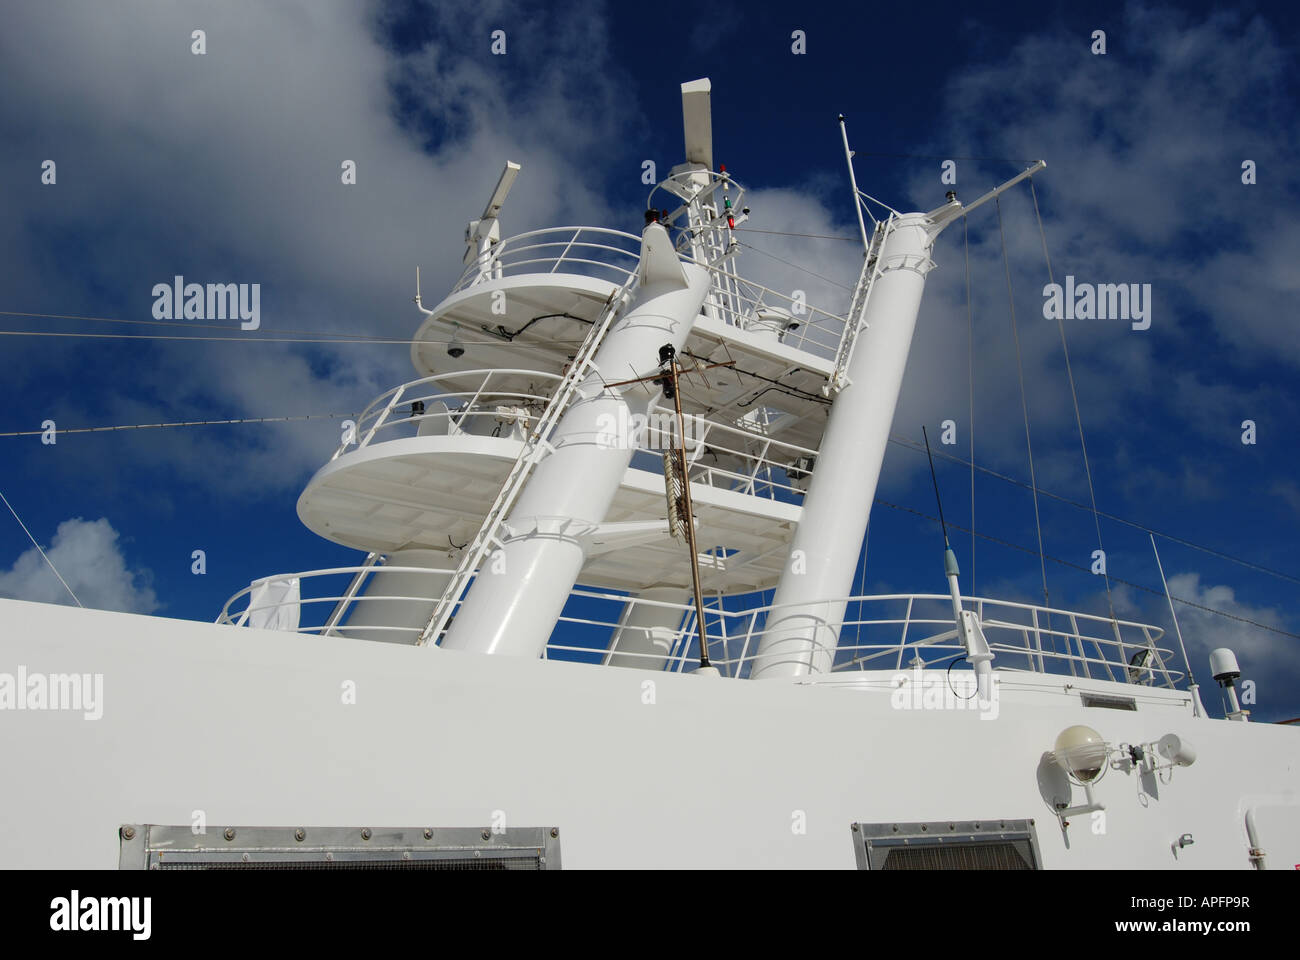 Radar and communications equipment on  the NCL 'Norwegian Jewel' cruise liner. - Stock Image